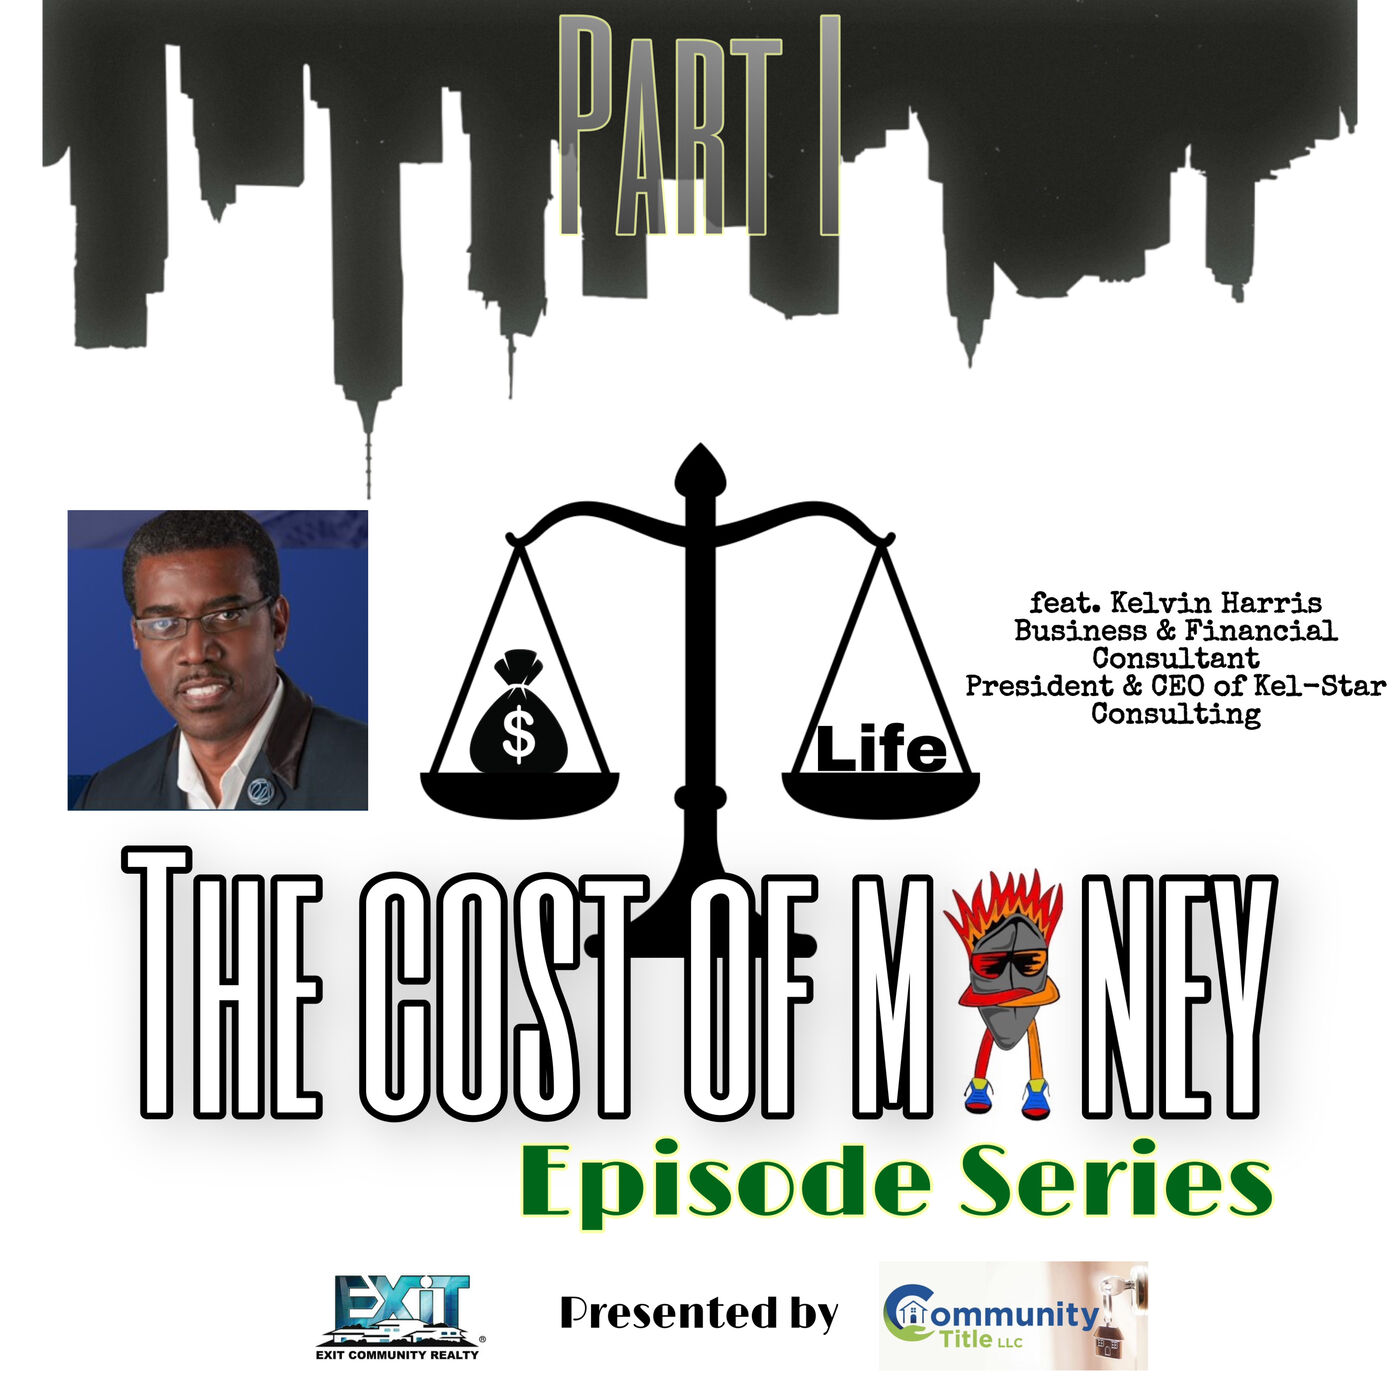 Ep.31 The Cost of Money Part I feat. Kelvin Harris (President & CEO of Kel-Star Consulting)